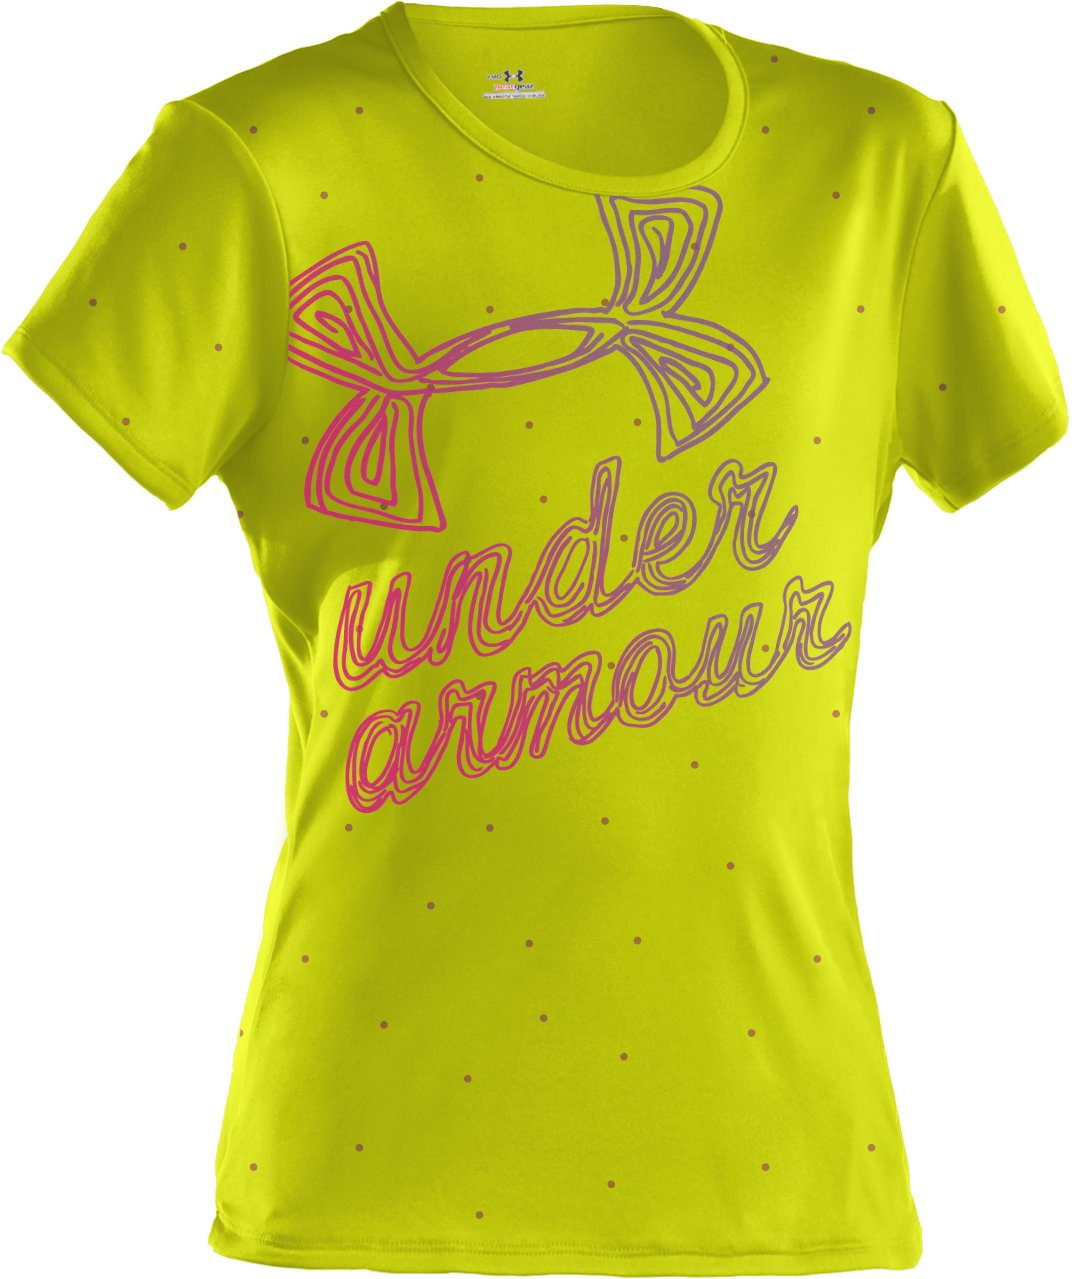 Girls' UA Speckle Script Graphic T-Shirt, High-Vis Yellow